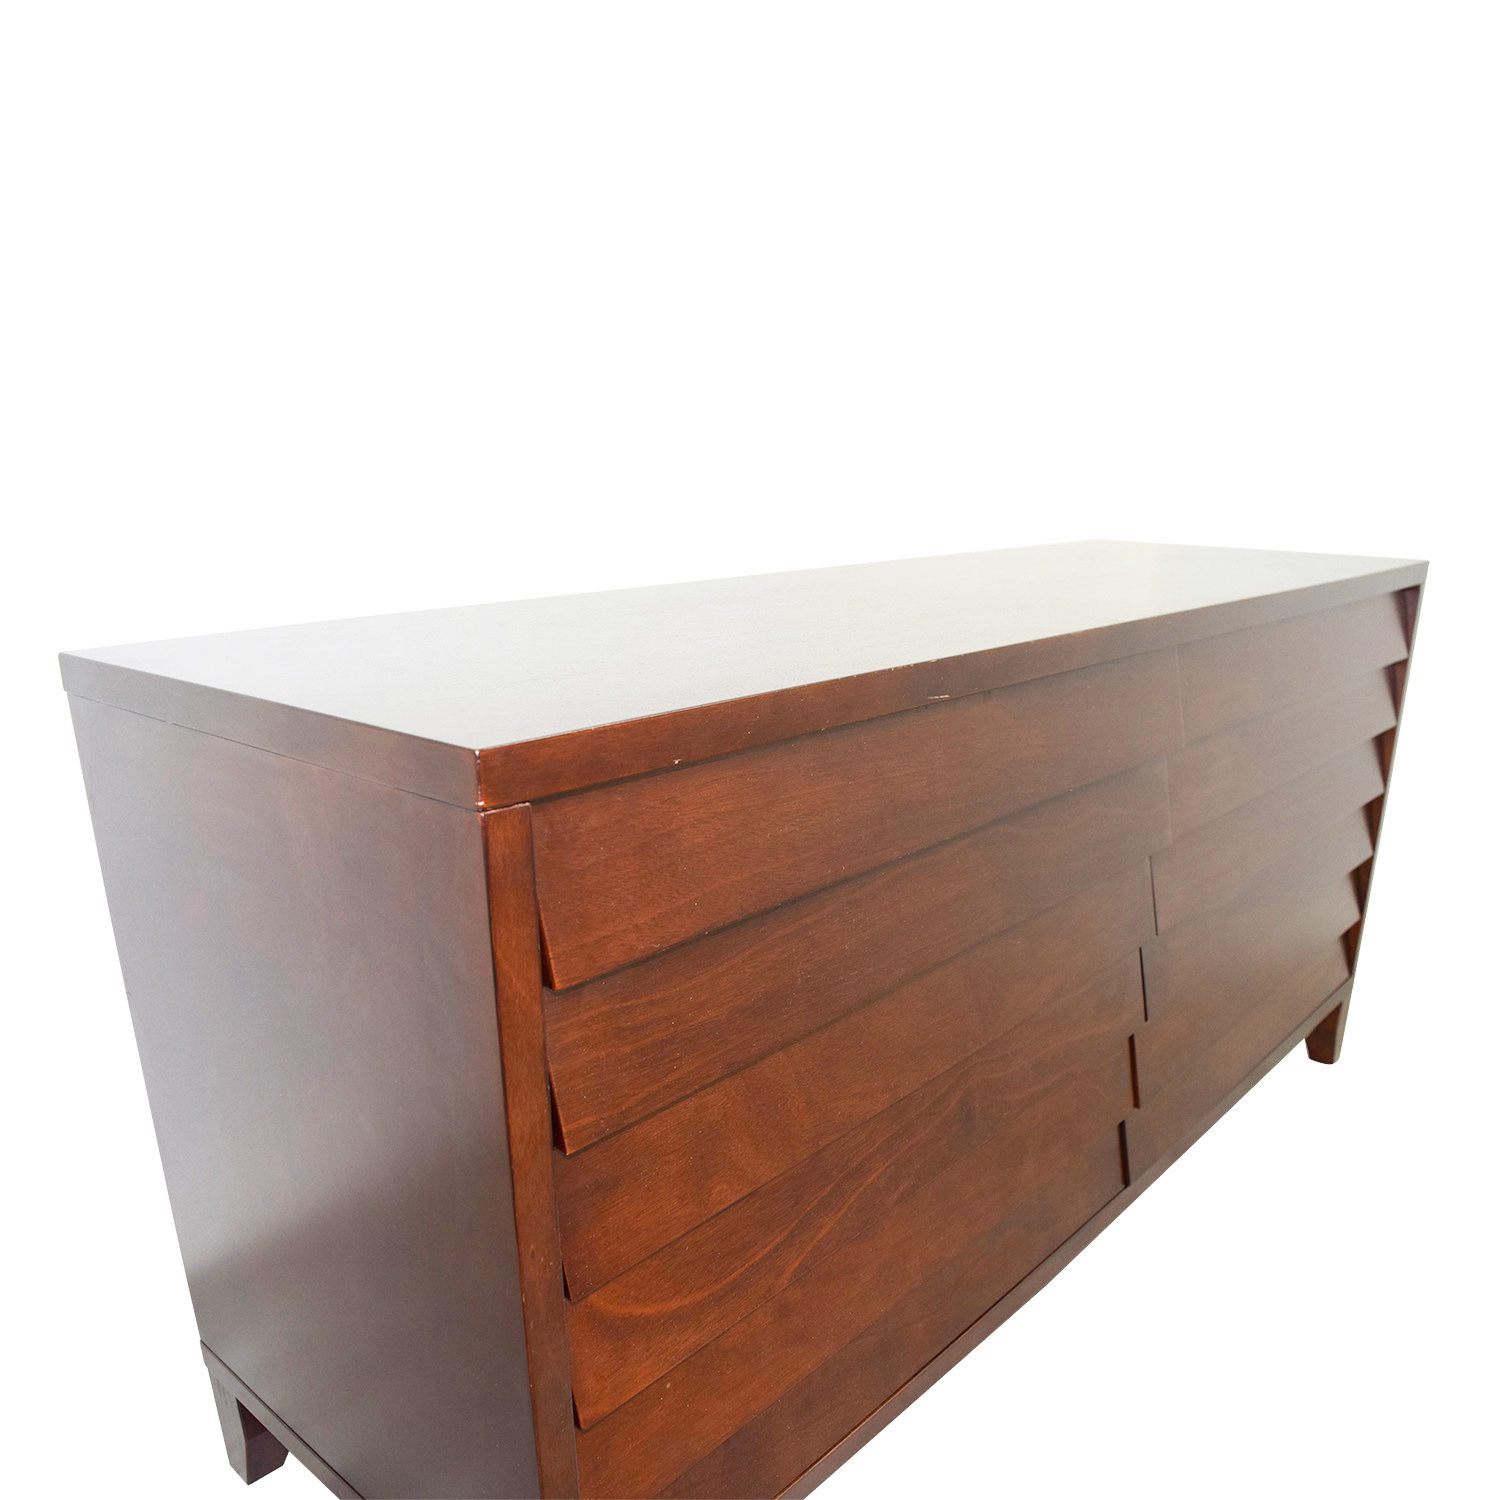 Jordans Furniture Six-Drawer Dresser sale